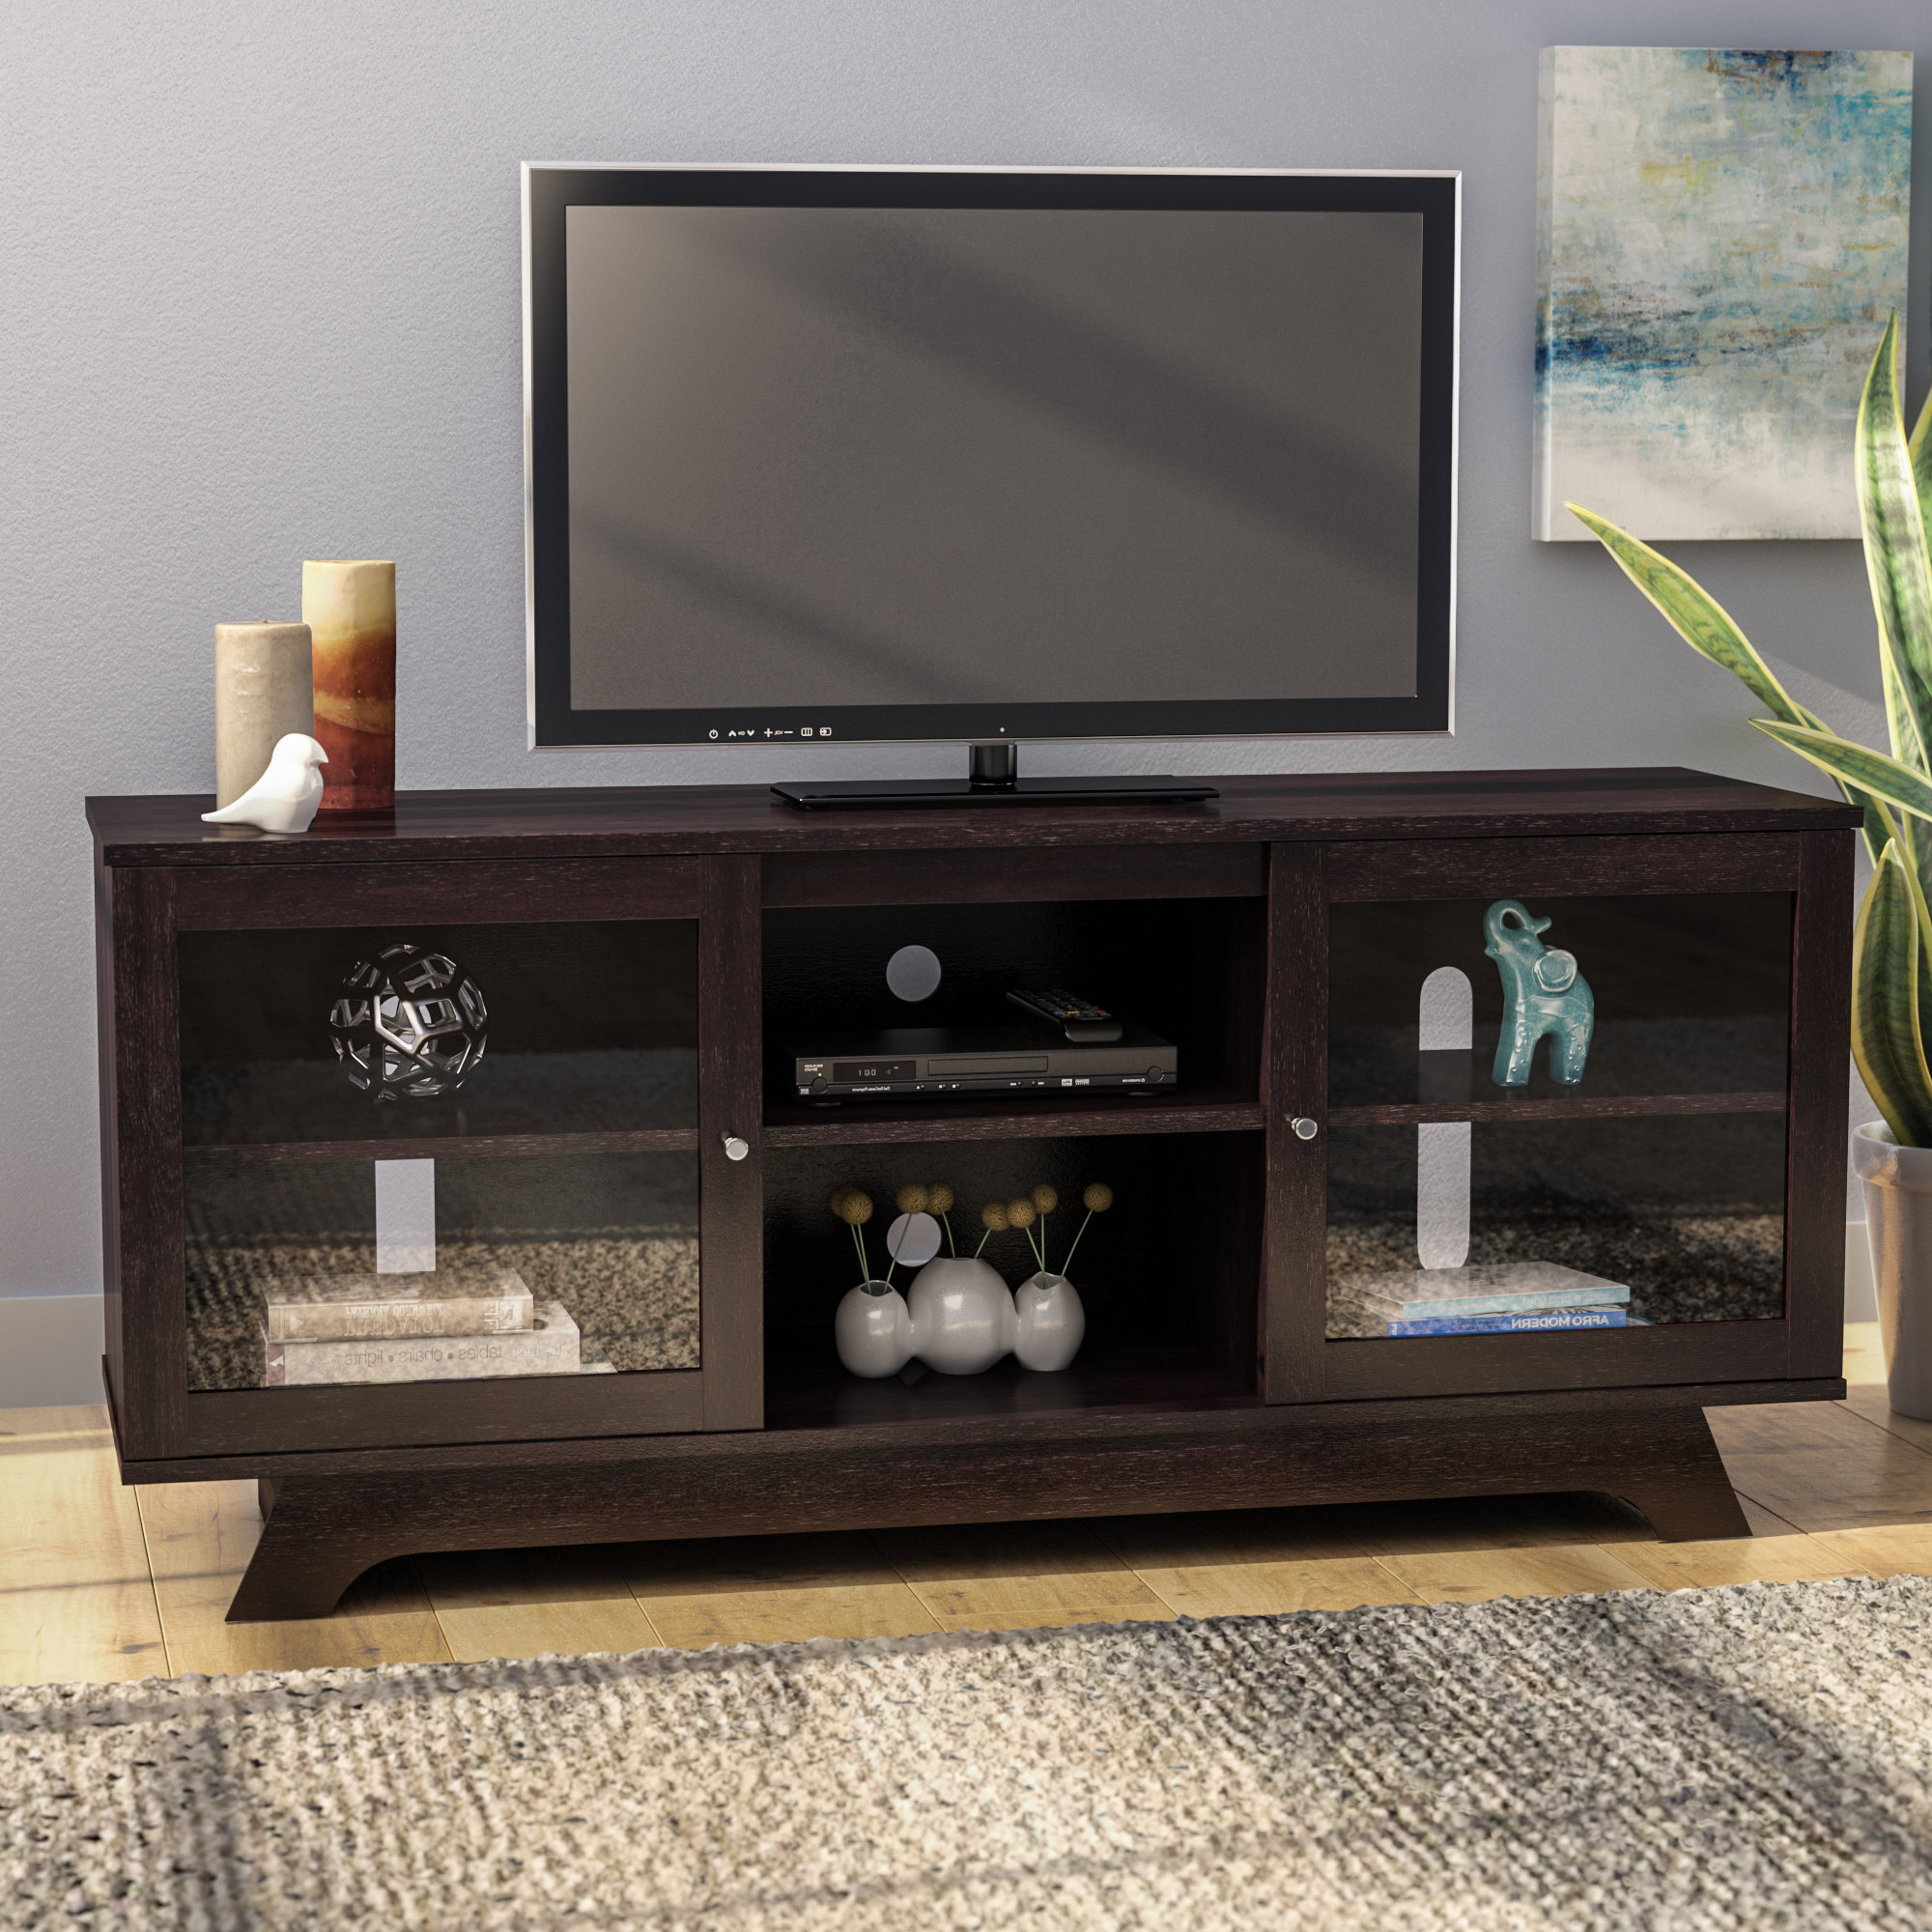 End Table And Tv Stand Set | Wayfair Regarding Combs 63 Inch Tv Stands (Gallery 10 of 20)